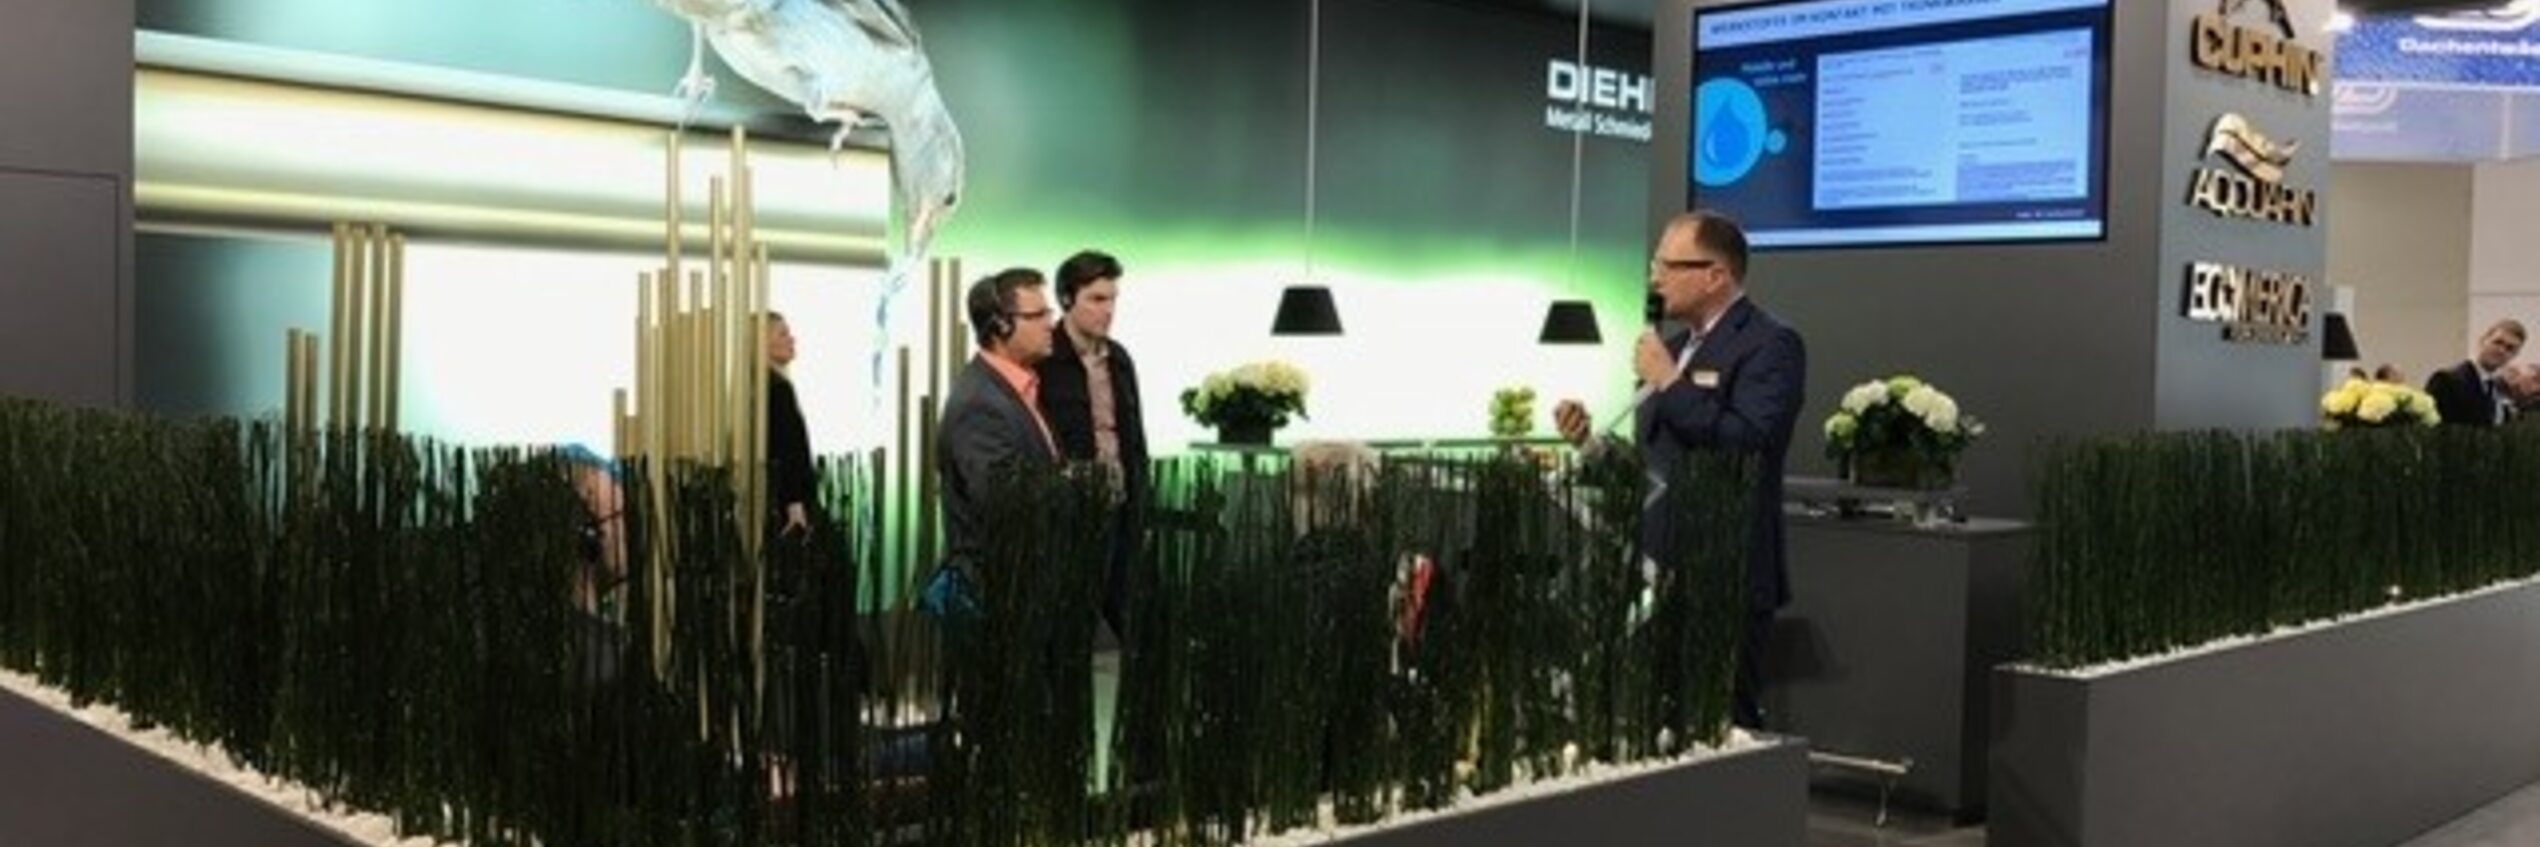 ISH: Successful Trade Fair for Diehl Metall